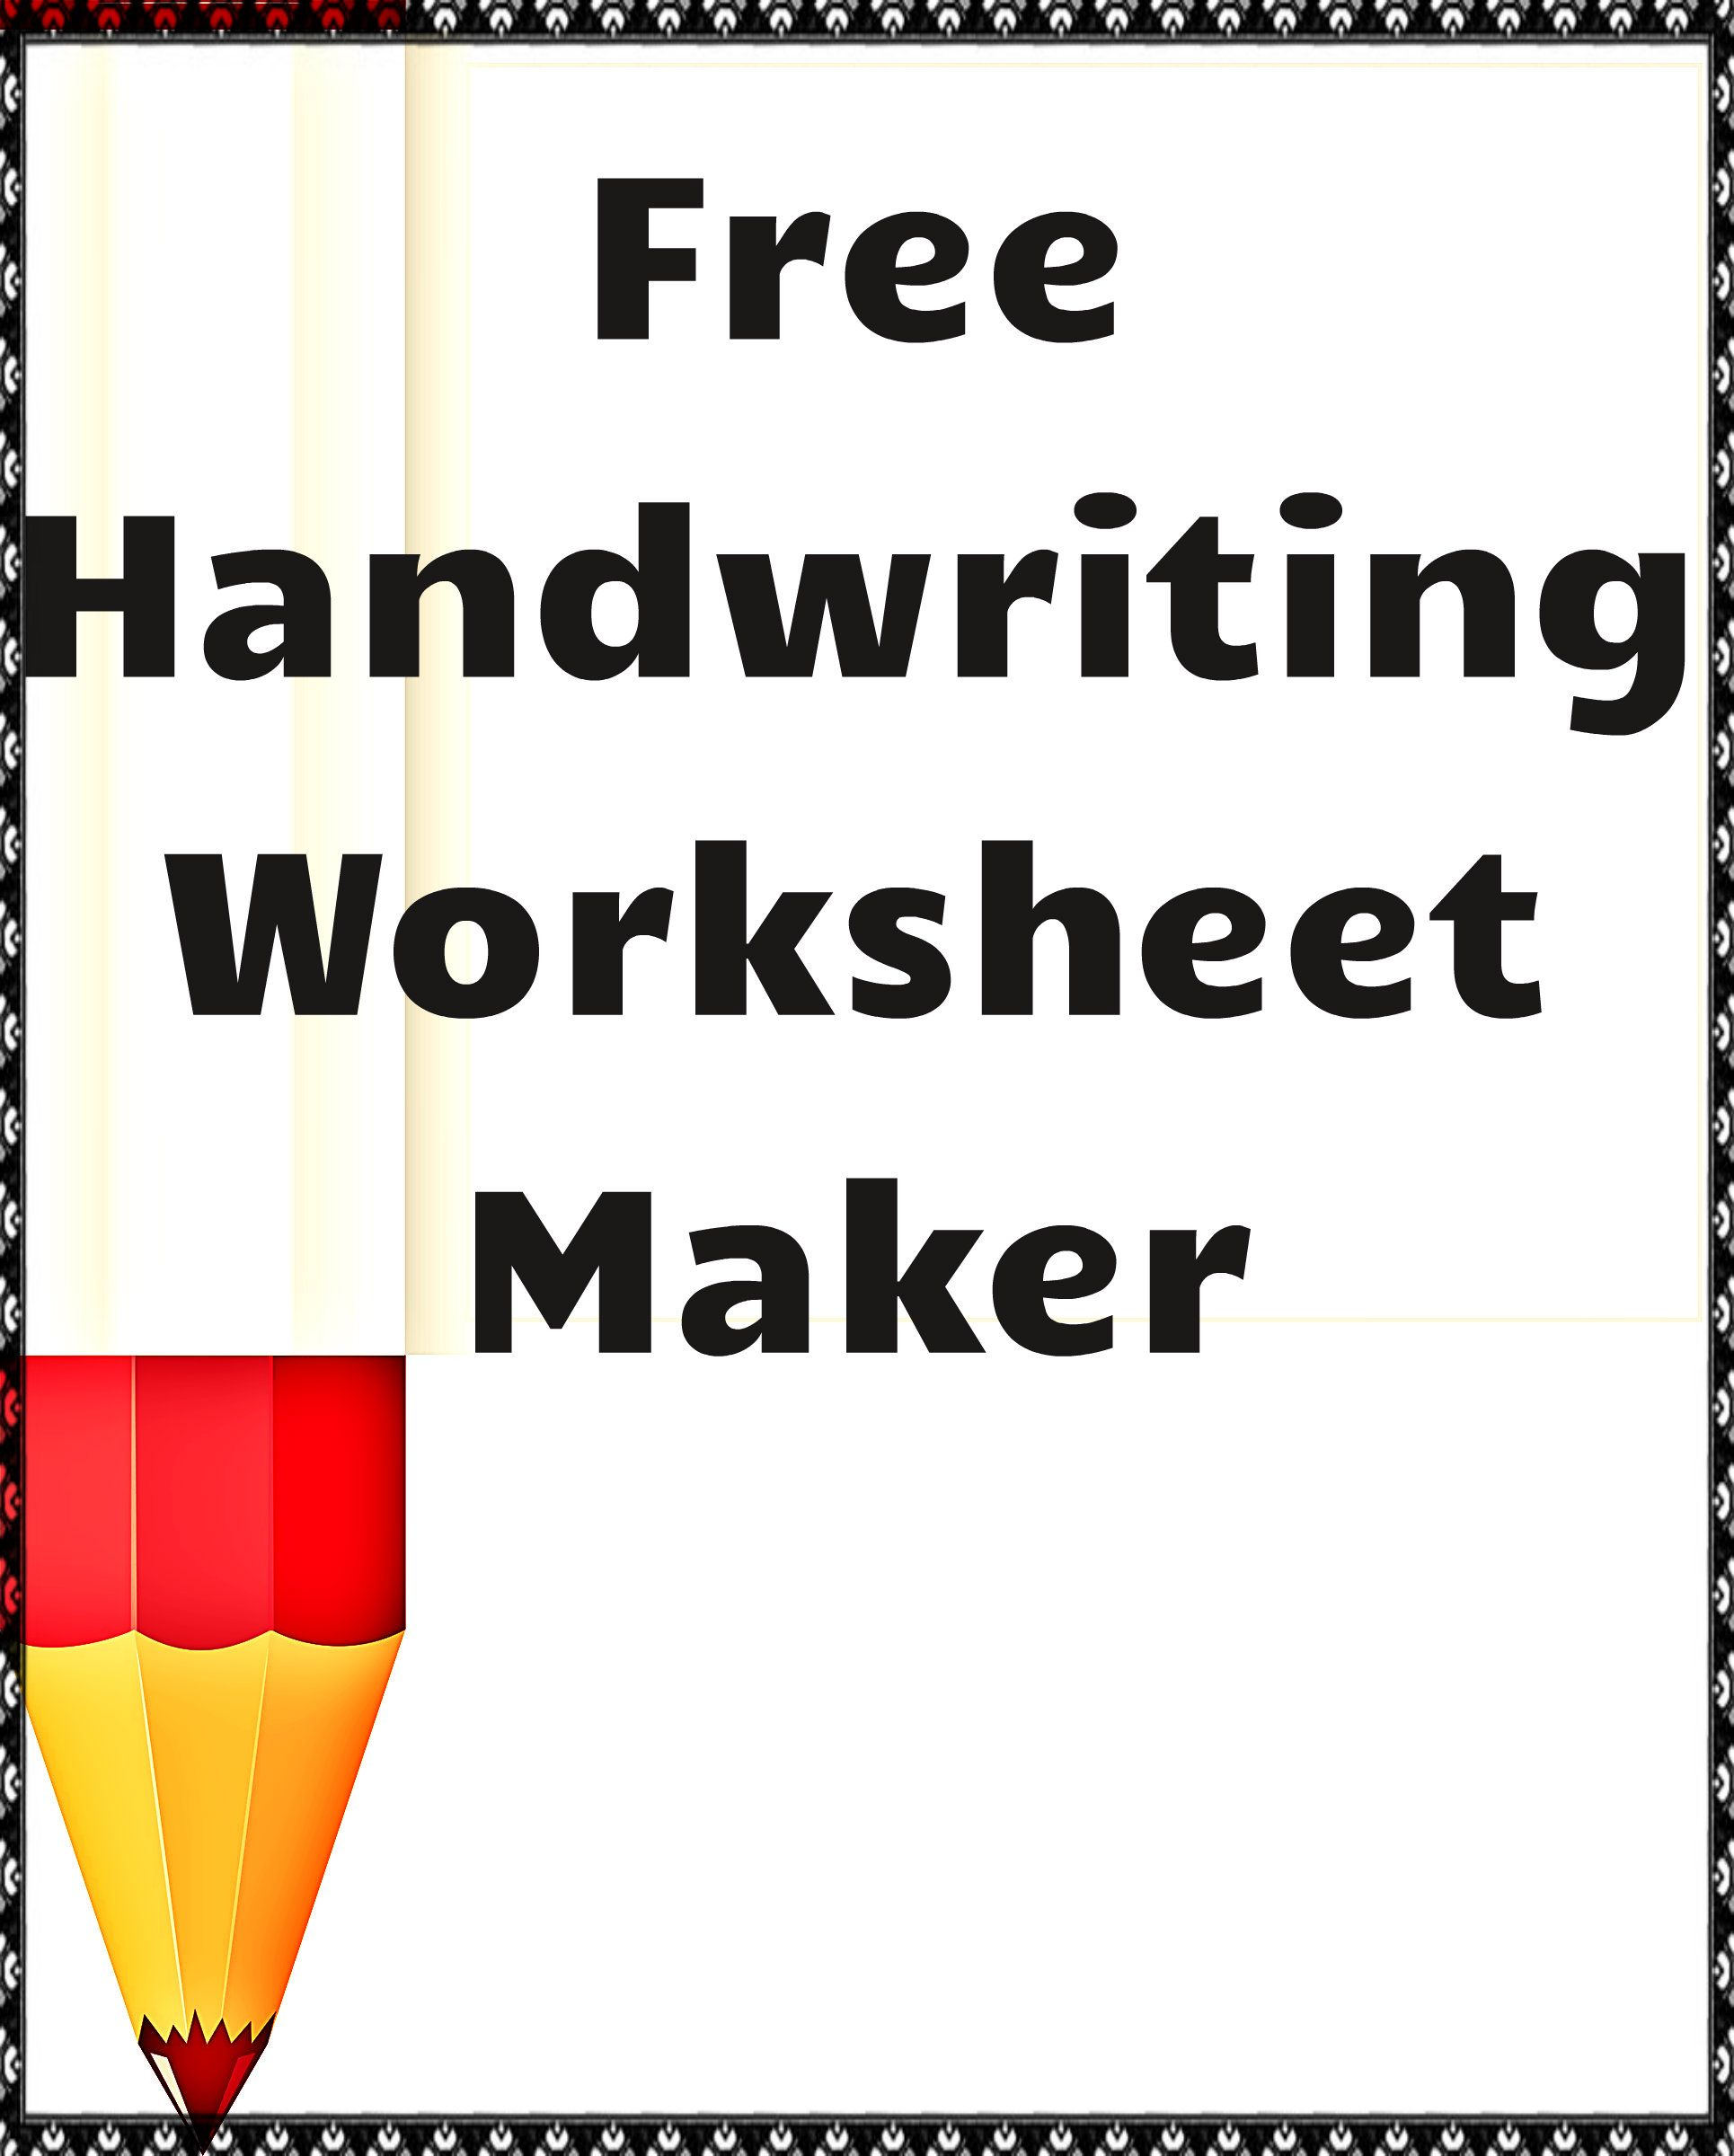 Worksheets Create A Handwriting Worksheet free handwriting worksheet maker kindergartenklub com pinterest maker